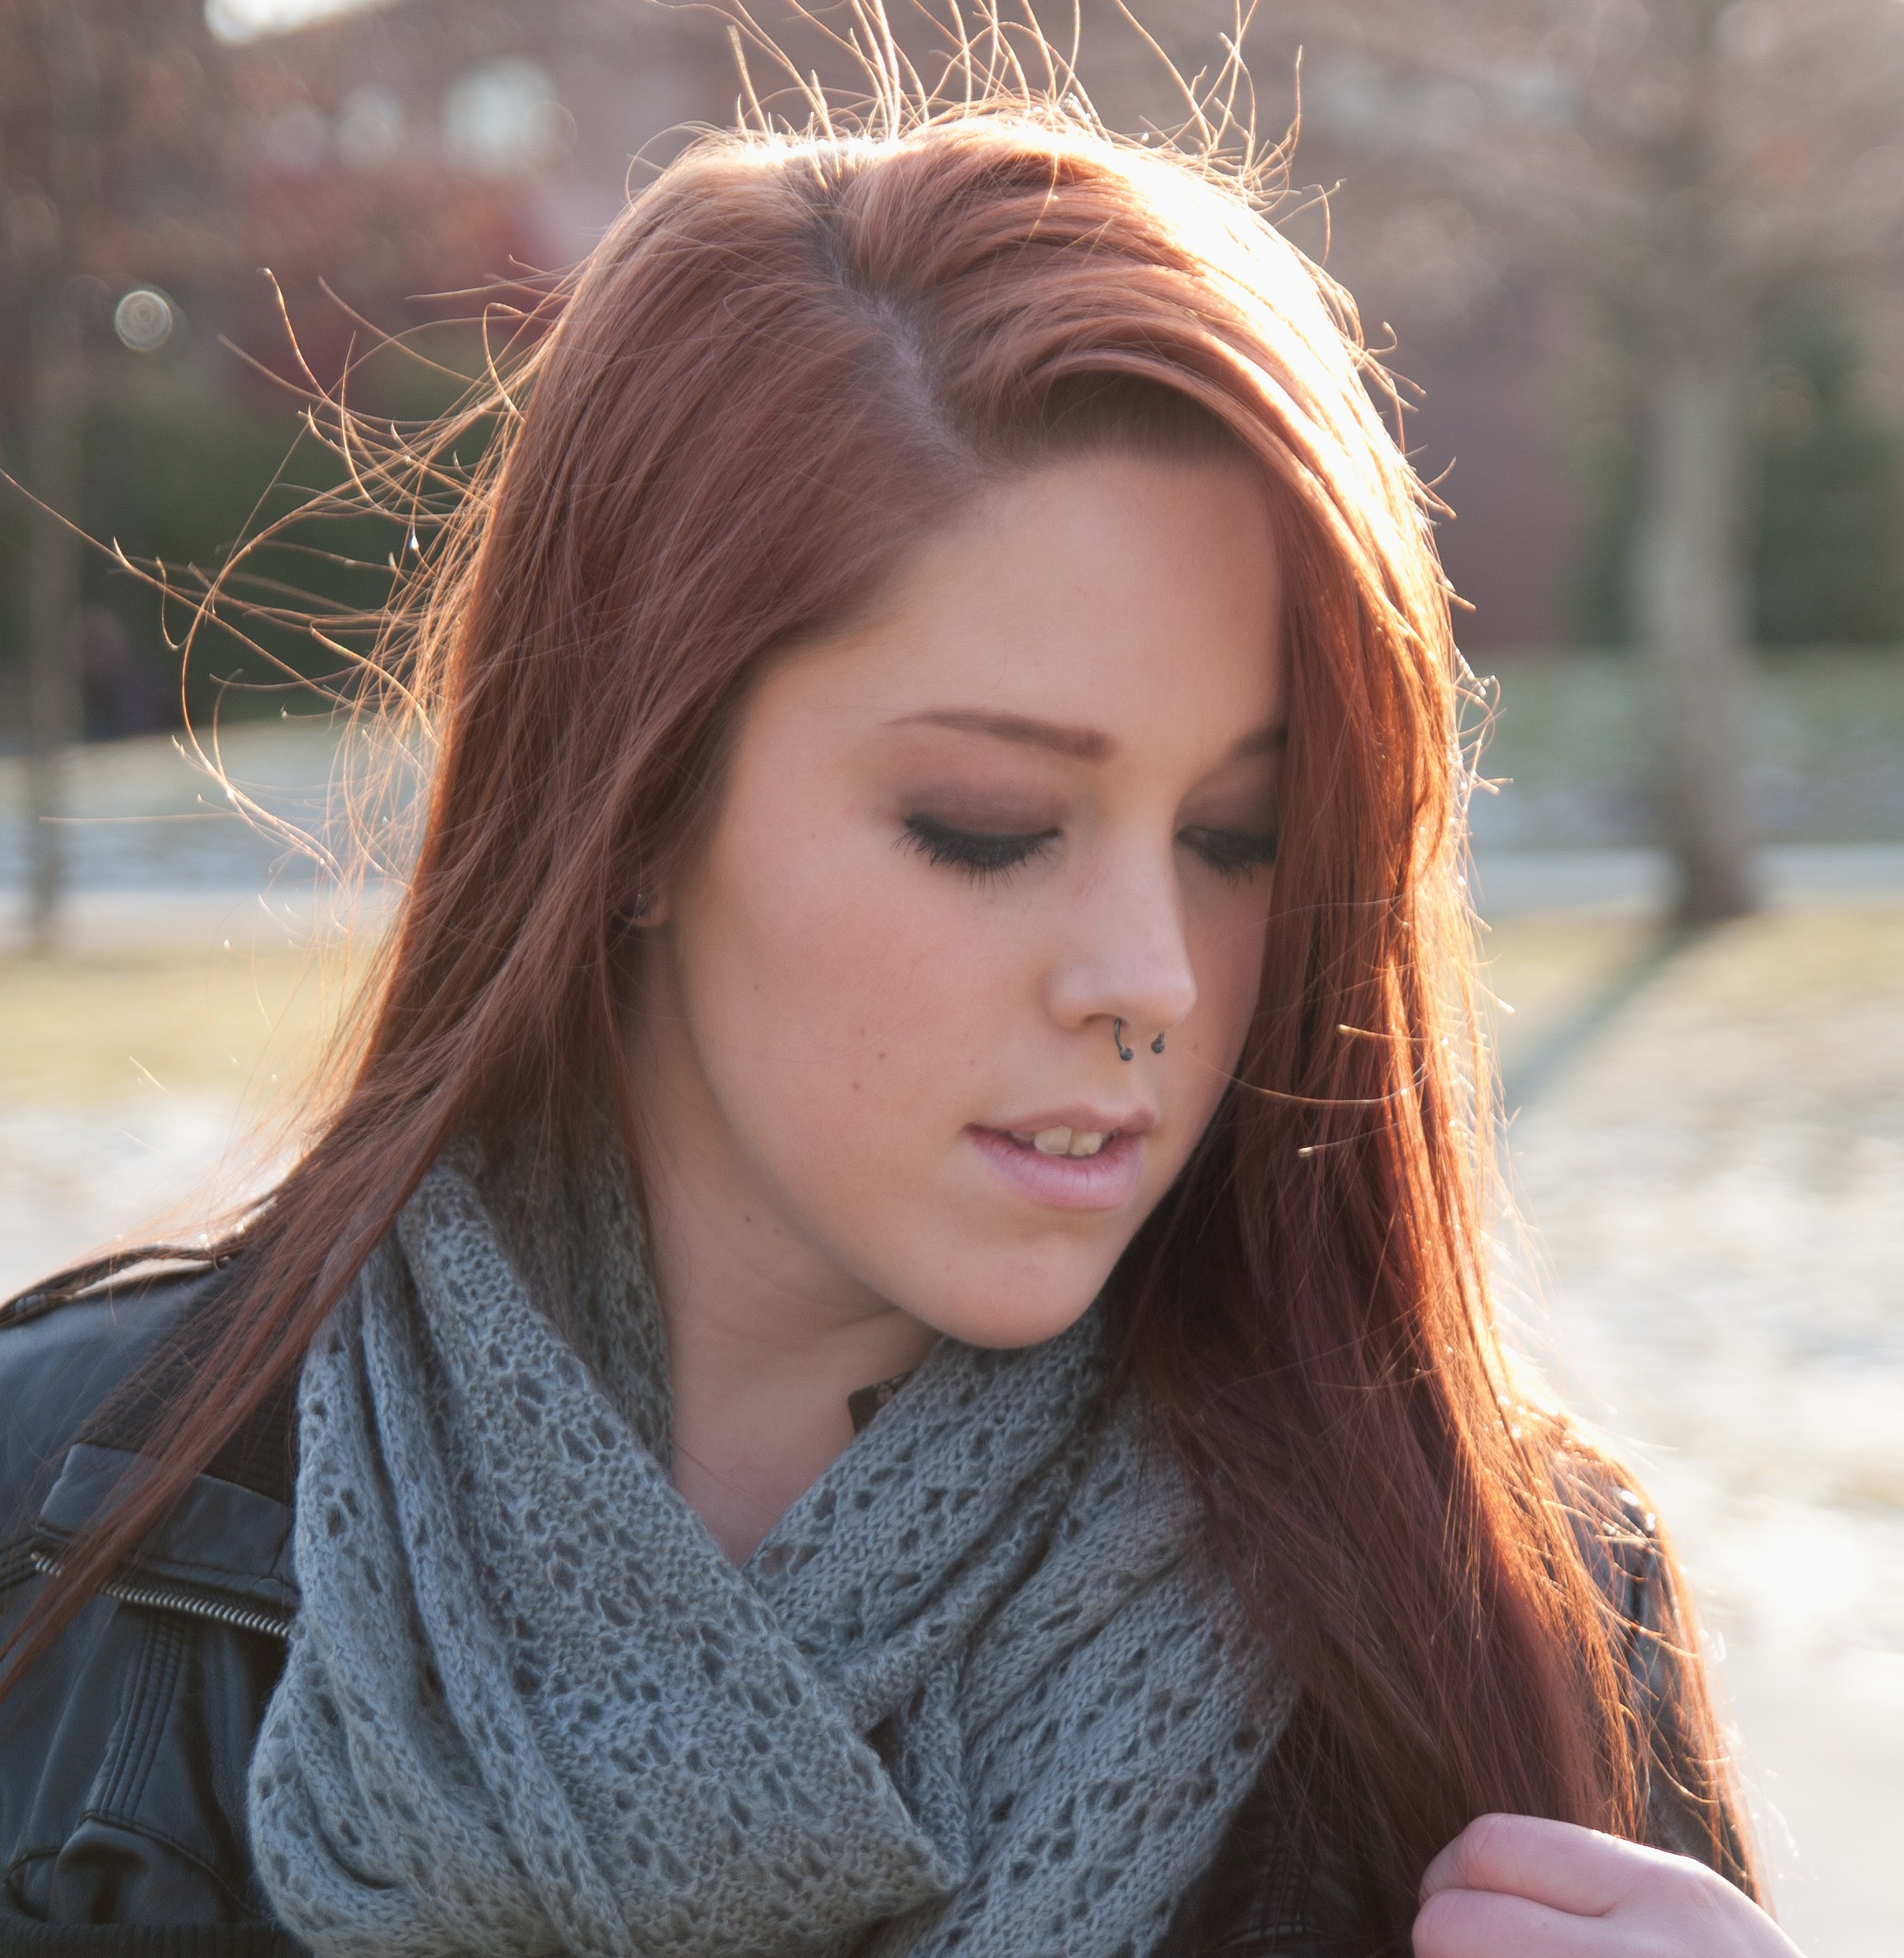 hair-color-for-winter-gaslighttavern-with-regard-to-fall-hair-colors-fall-hair-colors